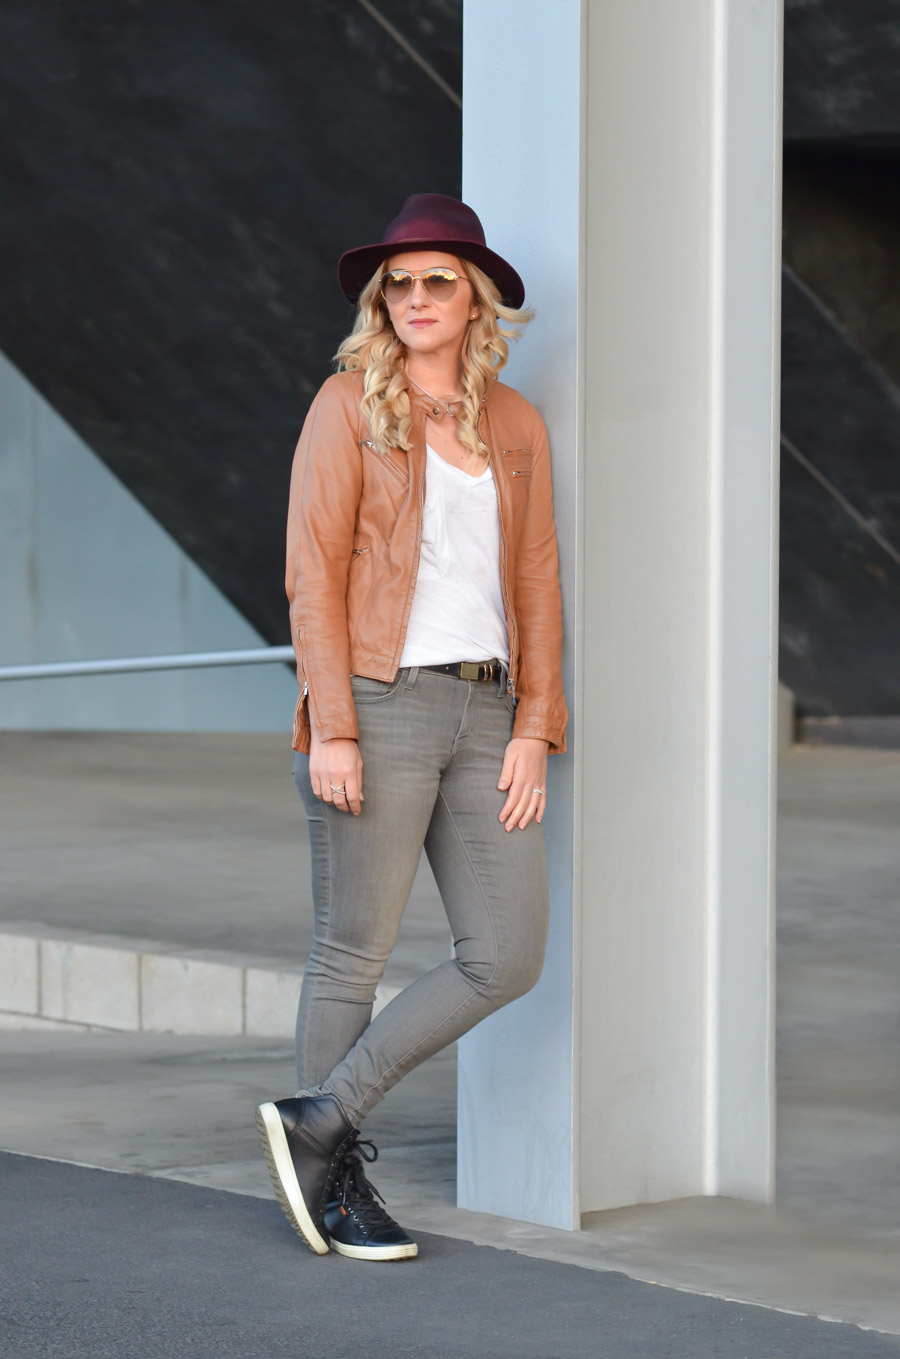 grey jeans outfit for women fall fashion  luci's morsels